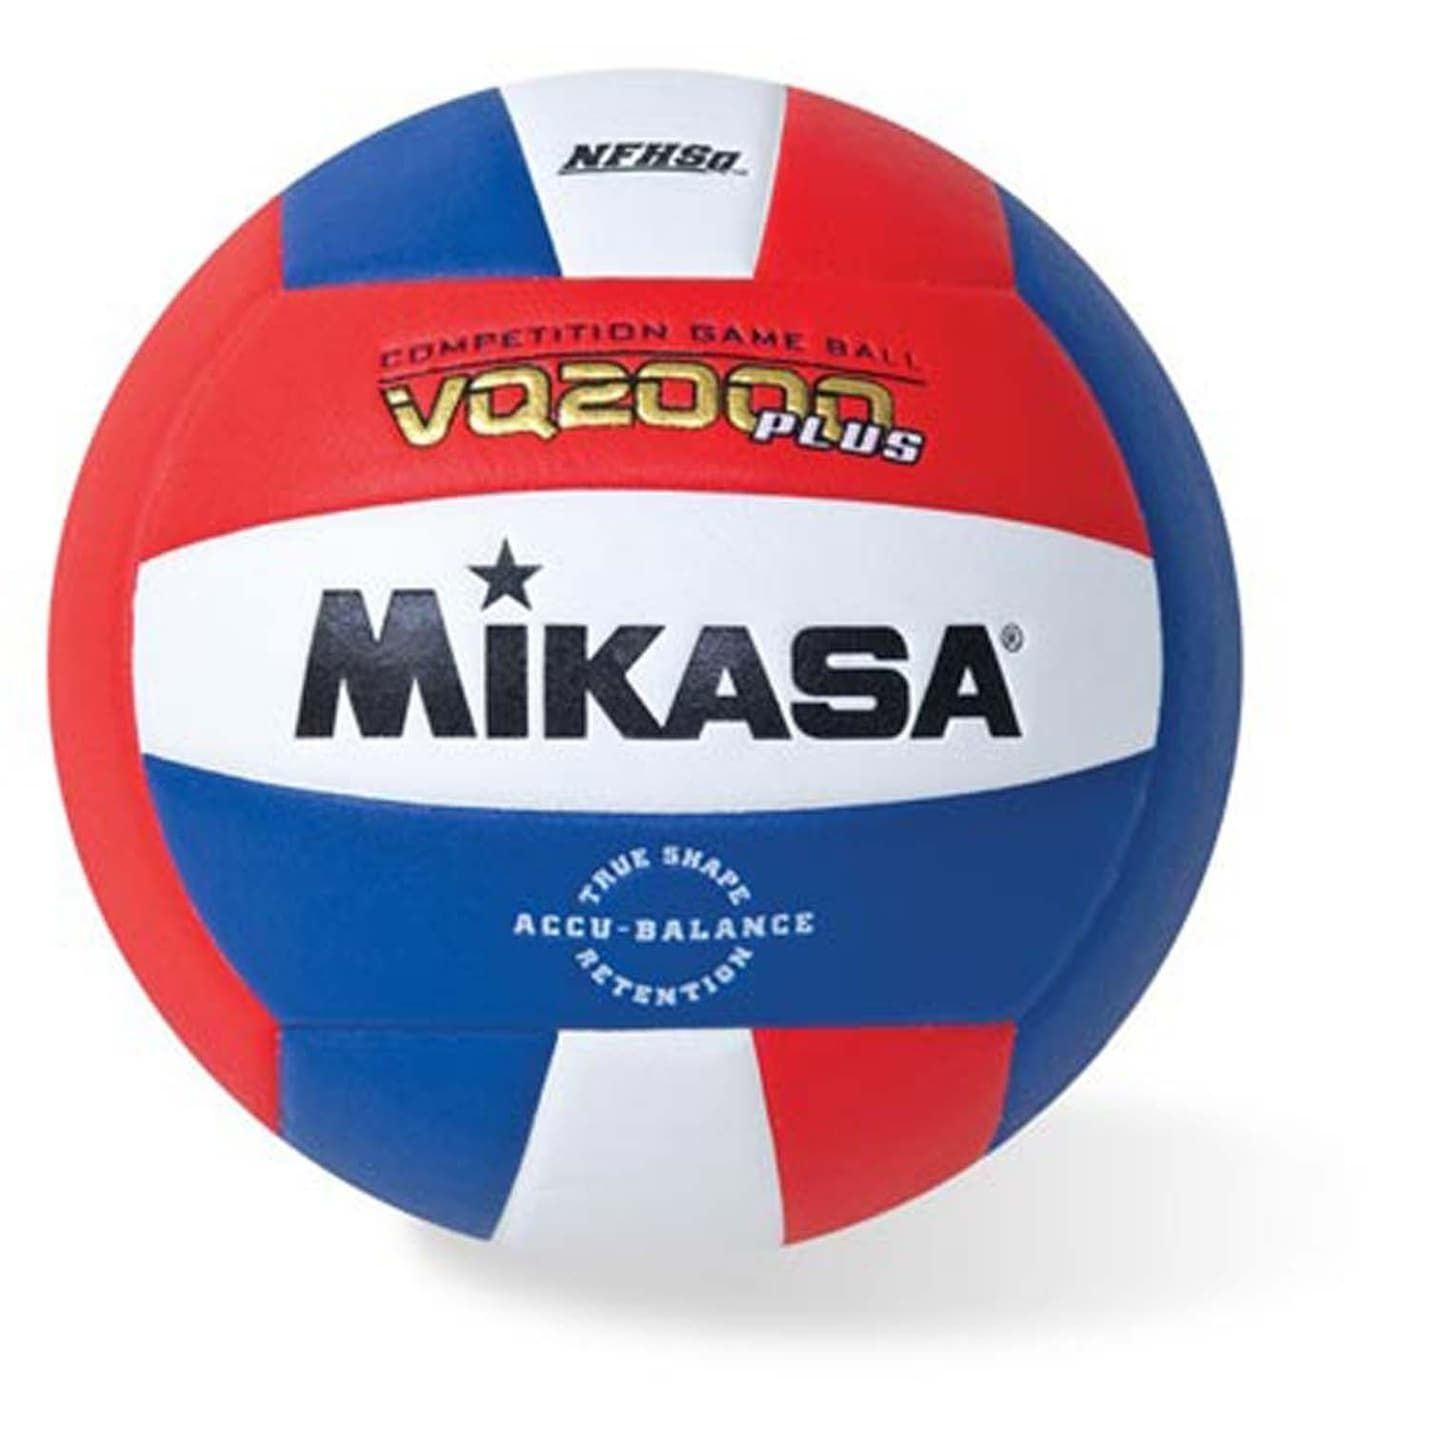 Mikasa Vq2000 Red White Blue Micro Cell Composite Cover Volleyball Products Volleyball Mikasa Competition Games